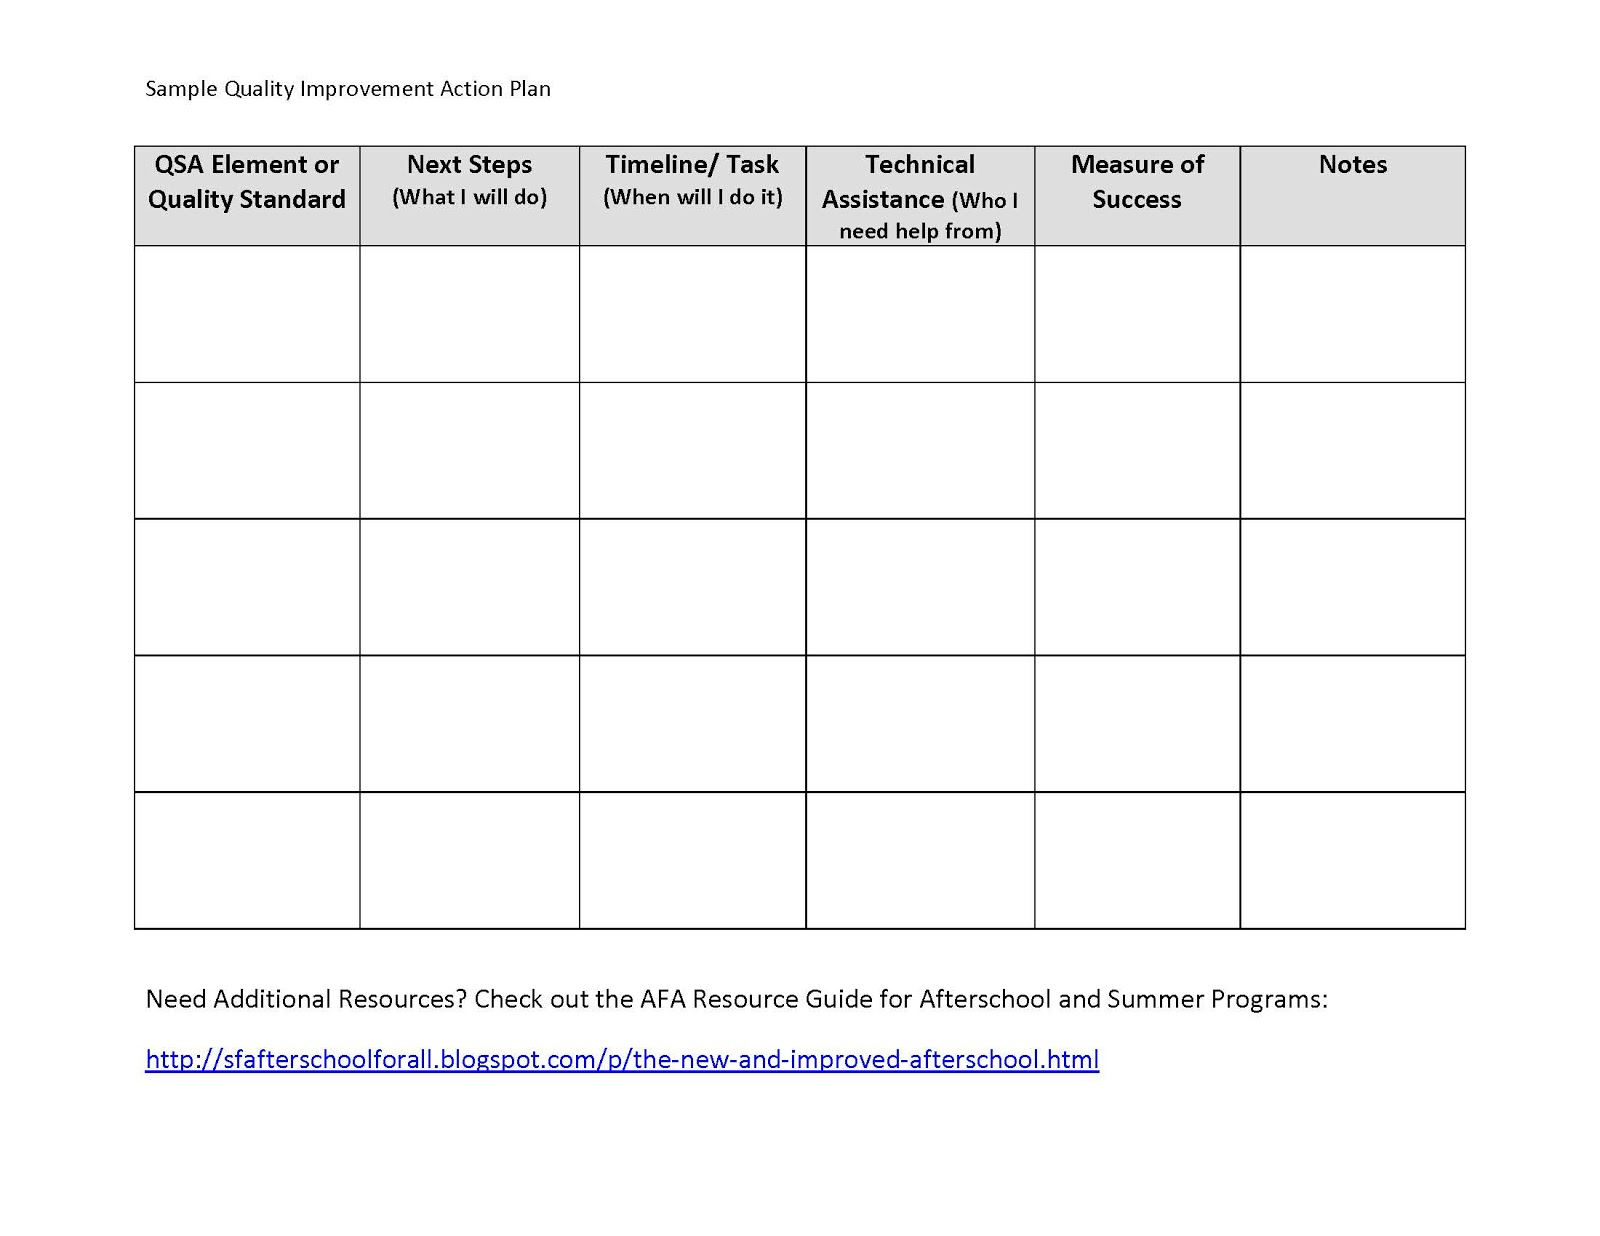 San francisco summer learning network program quality for Template for quality improvement plan